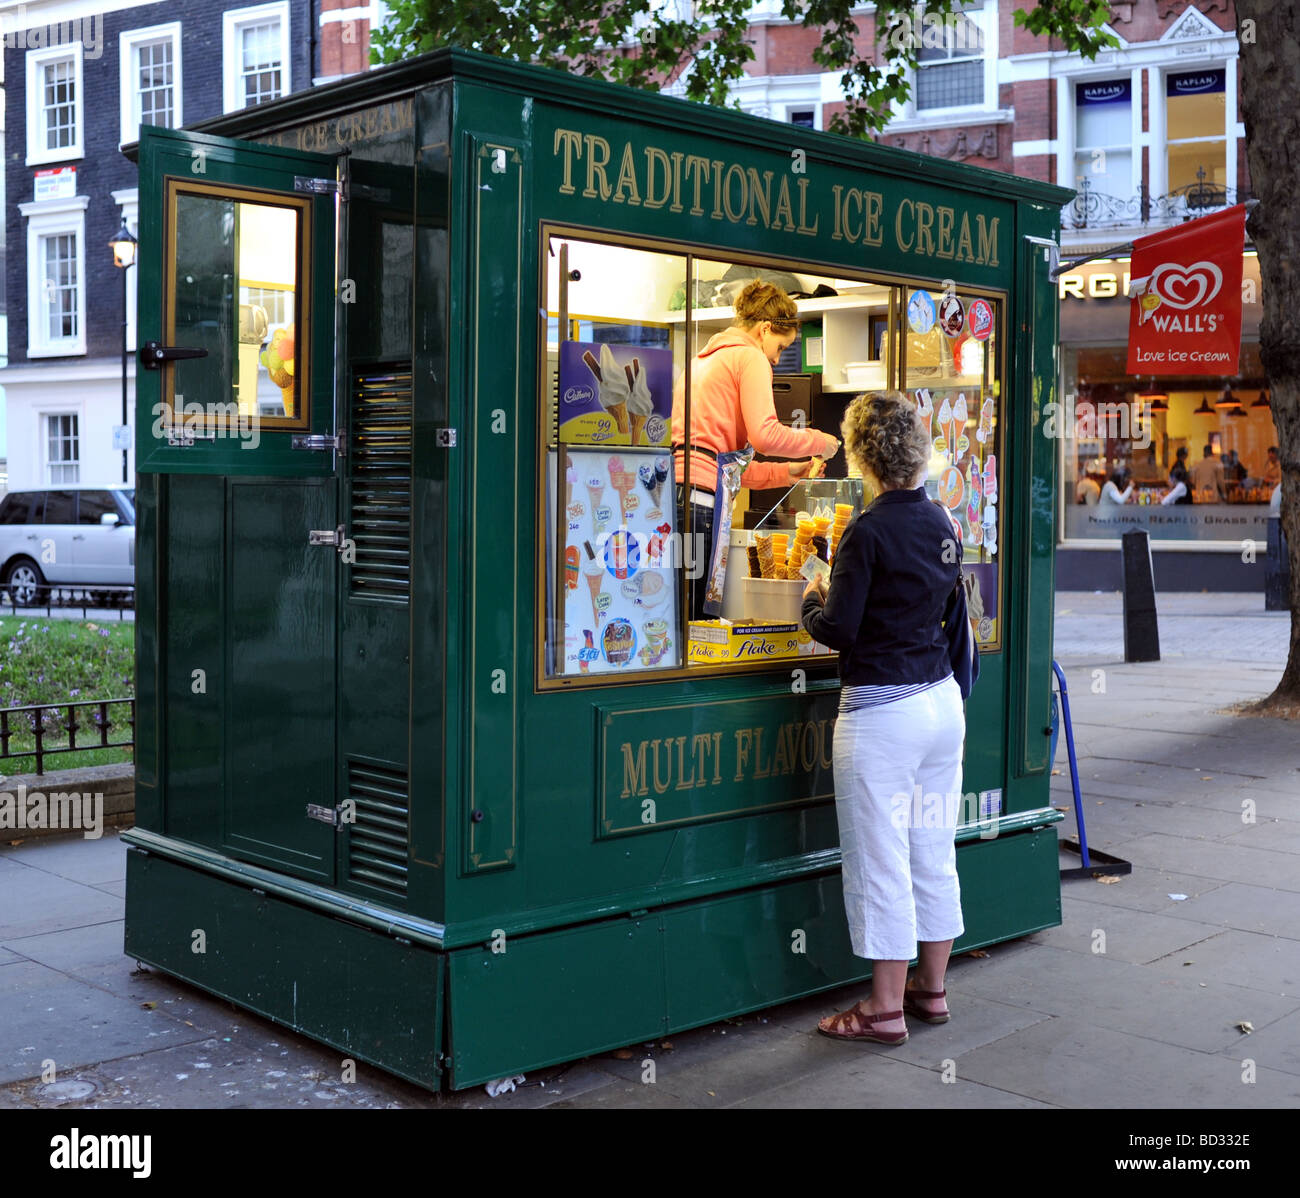 Kiosk serving traditional ice cream in the Leicester Square district of London - Stock Image